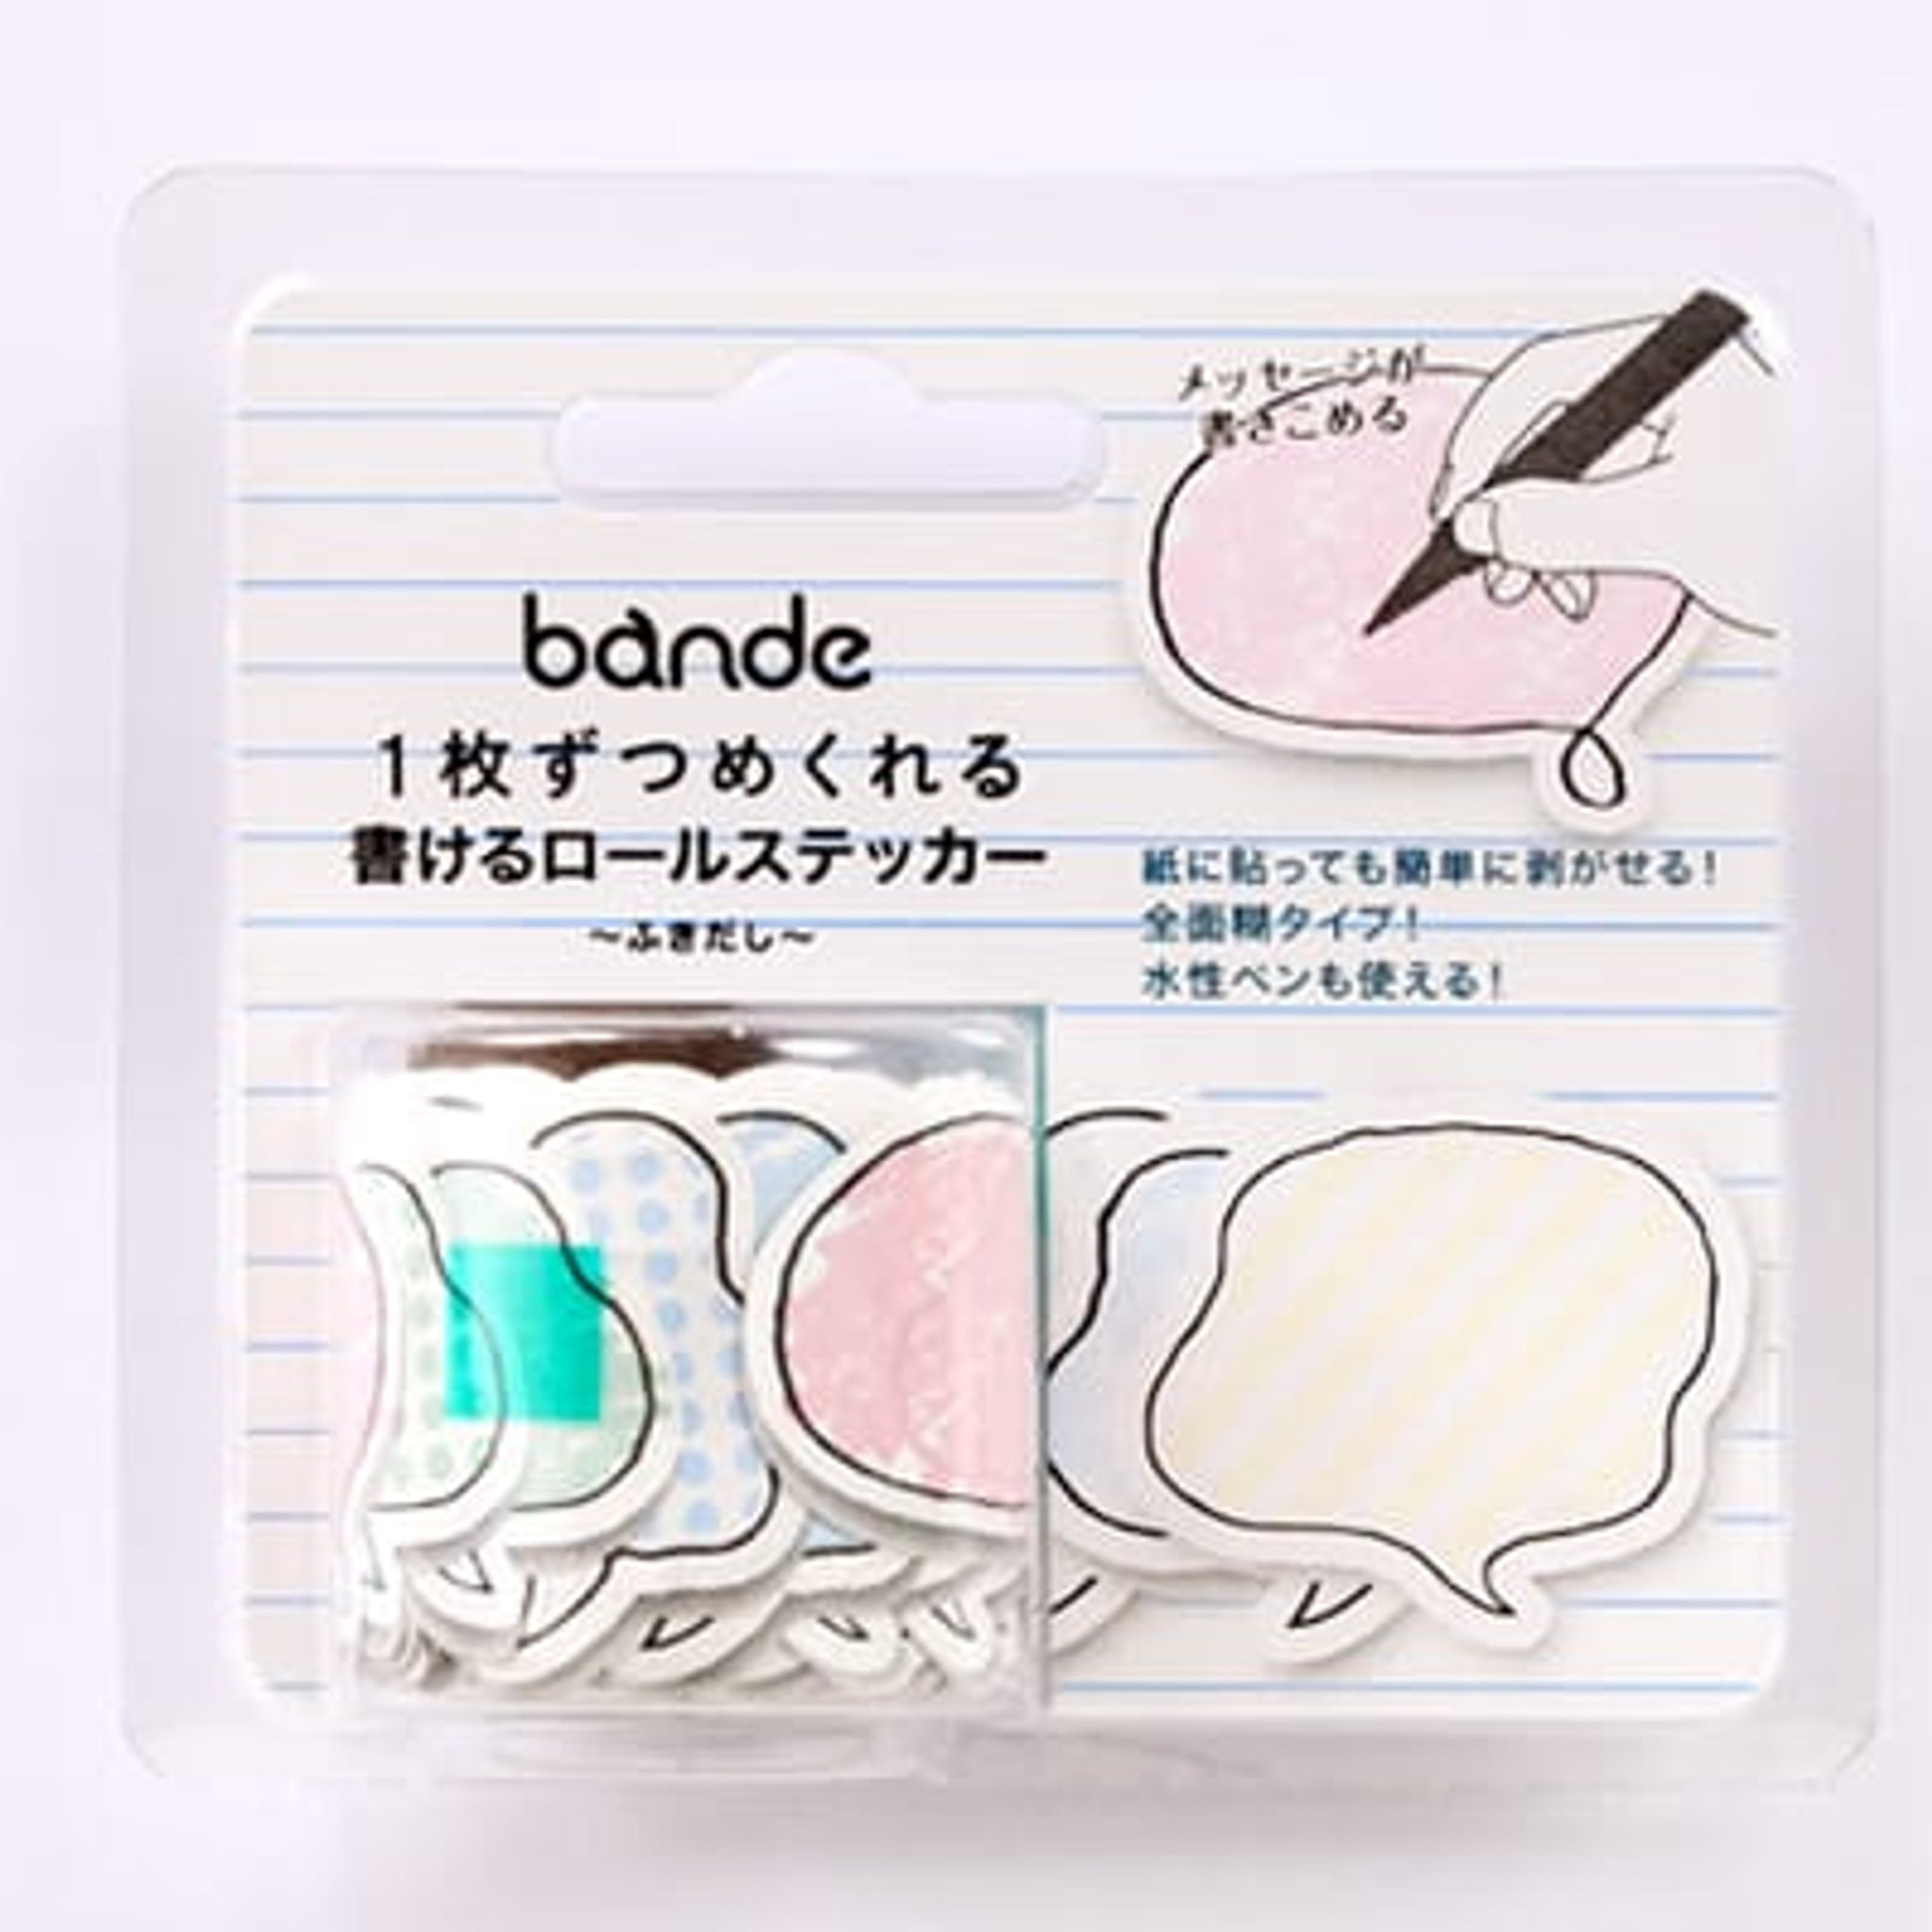 Bande Speech Bubble Writable Washi Roll Sticker